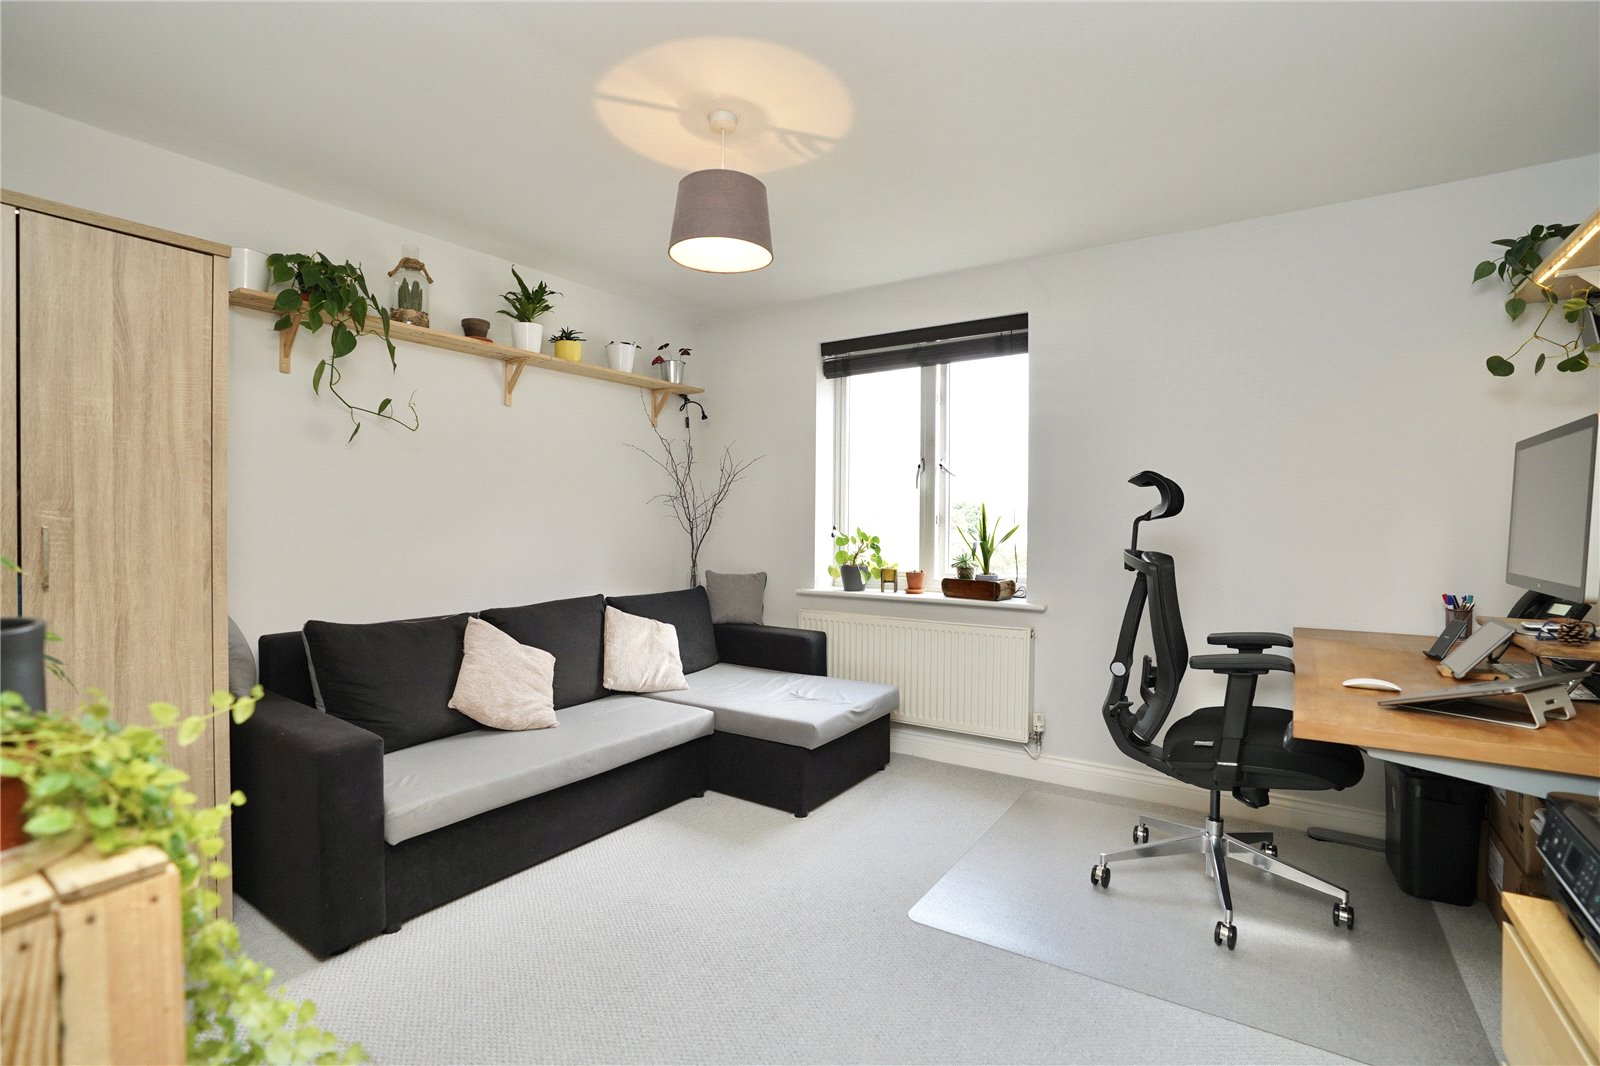 2 bed apartment for sale in St. Ives, PE27 5QL 8